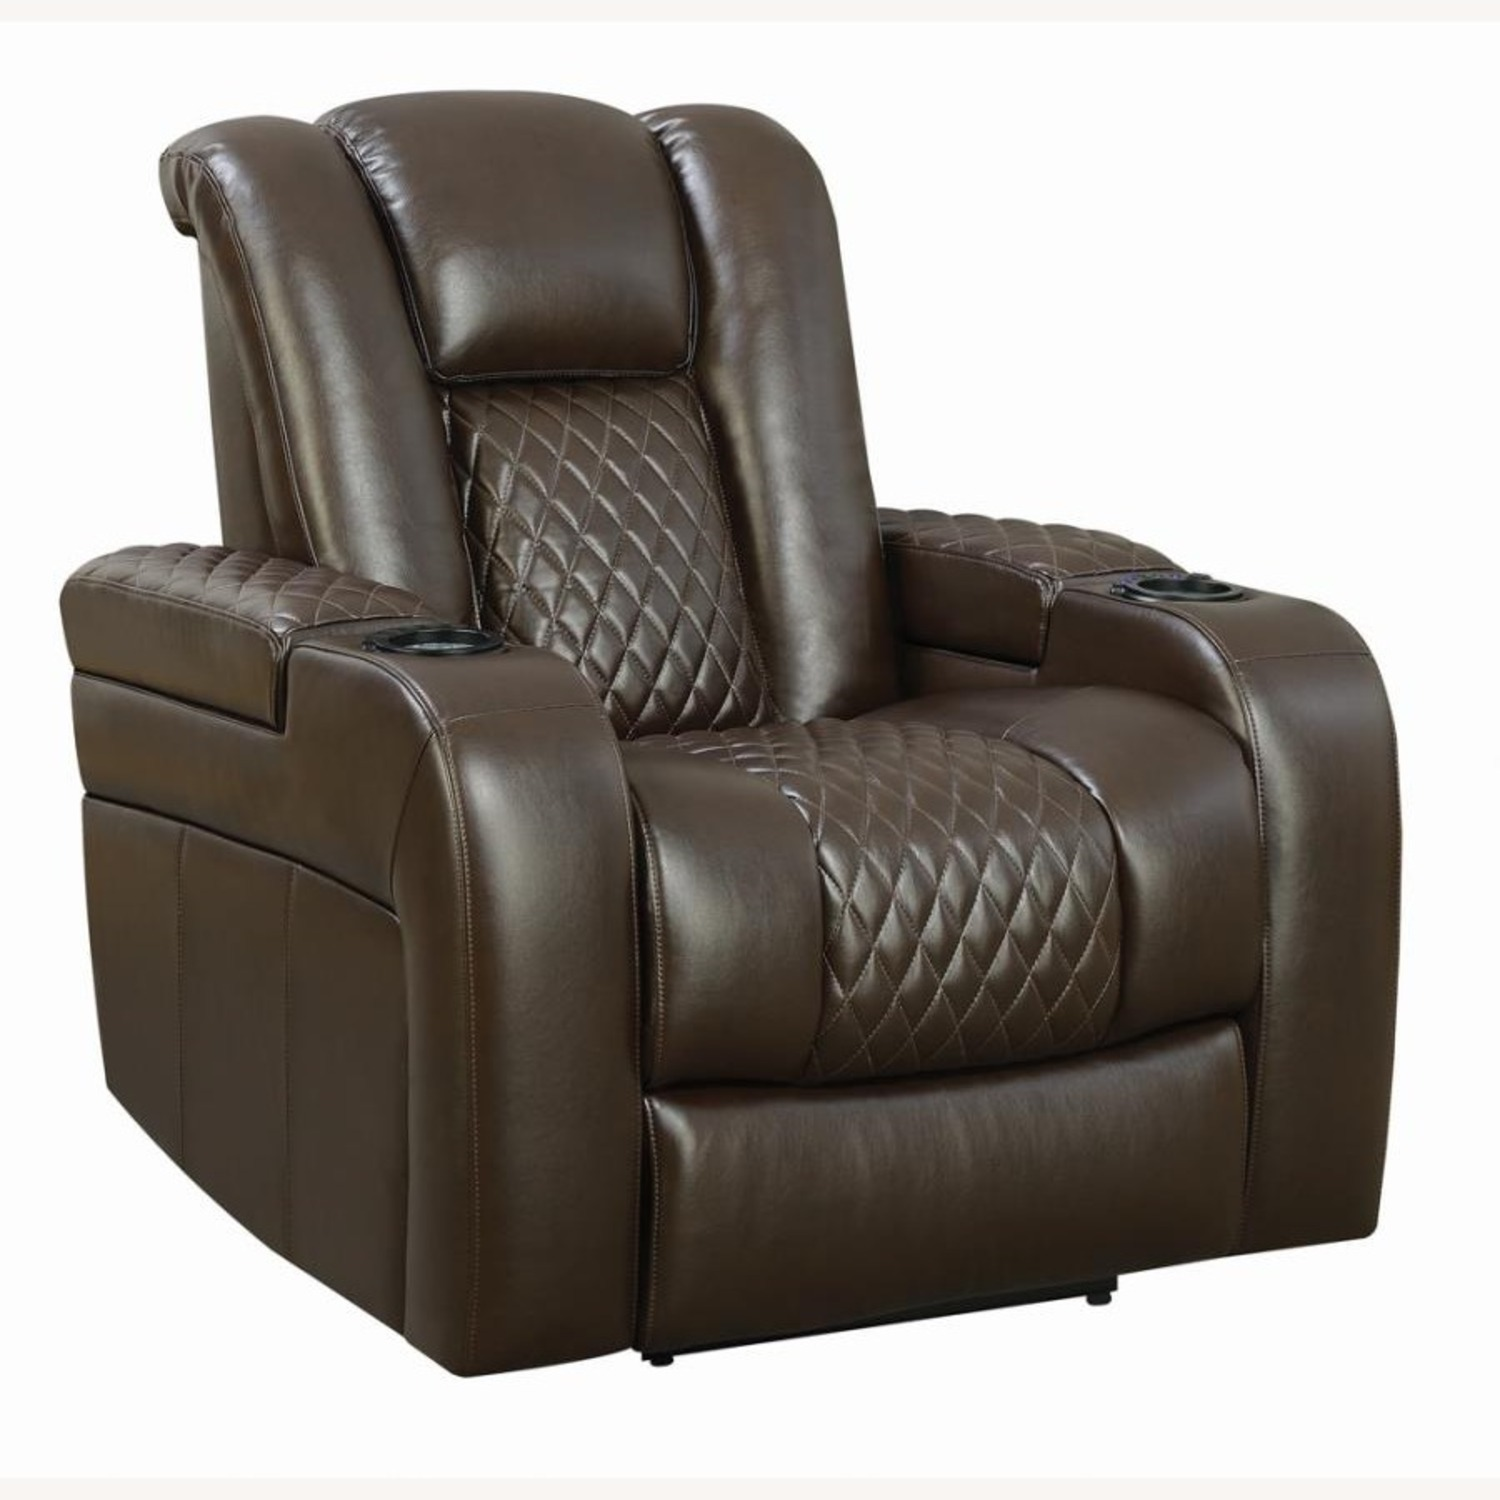 Power Recliner In Brown Performance Leatherette - image-0